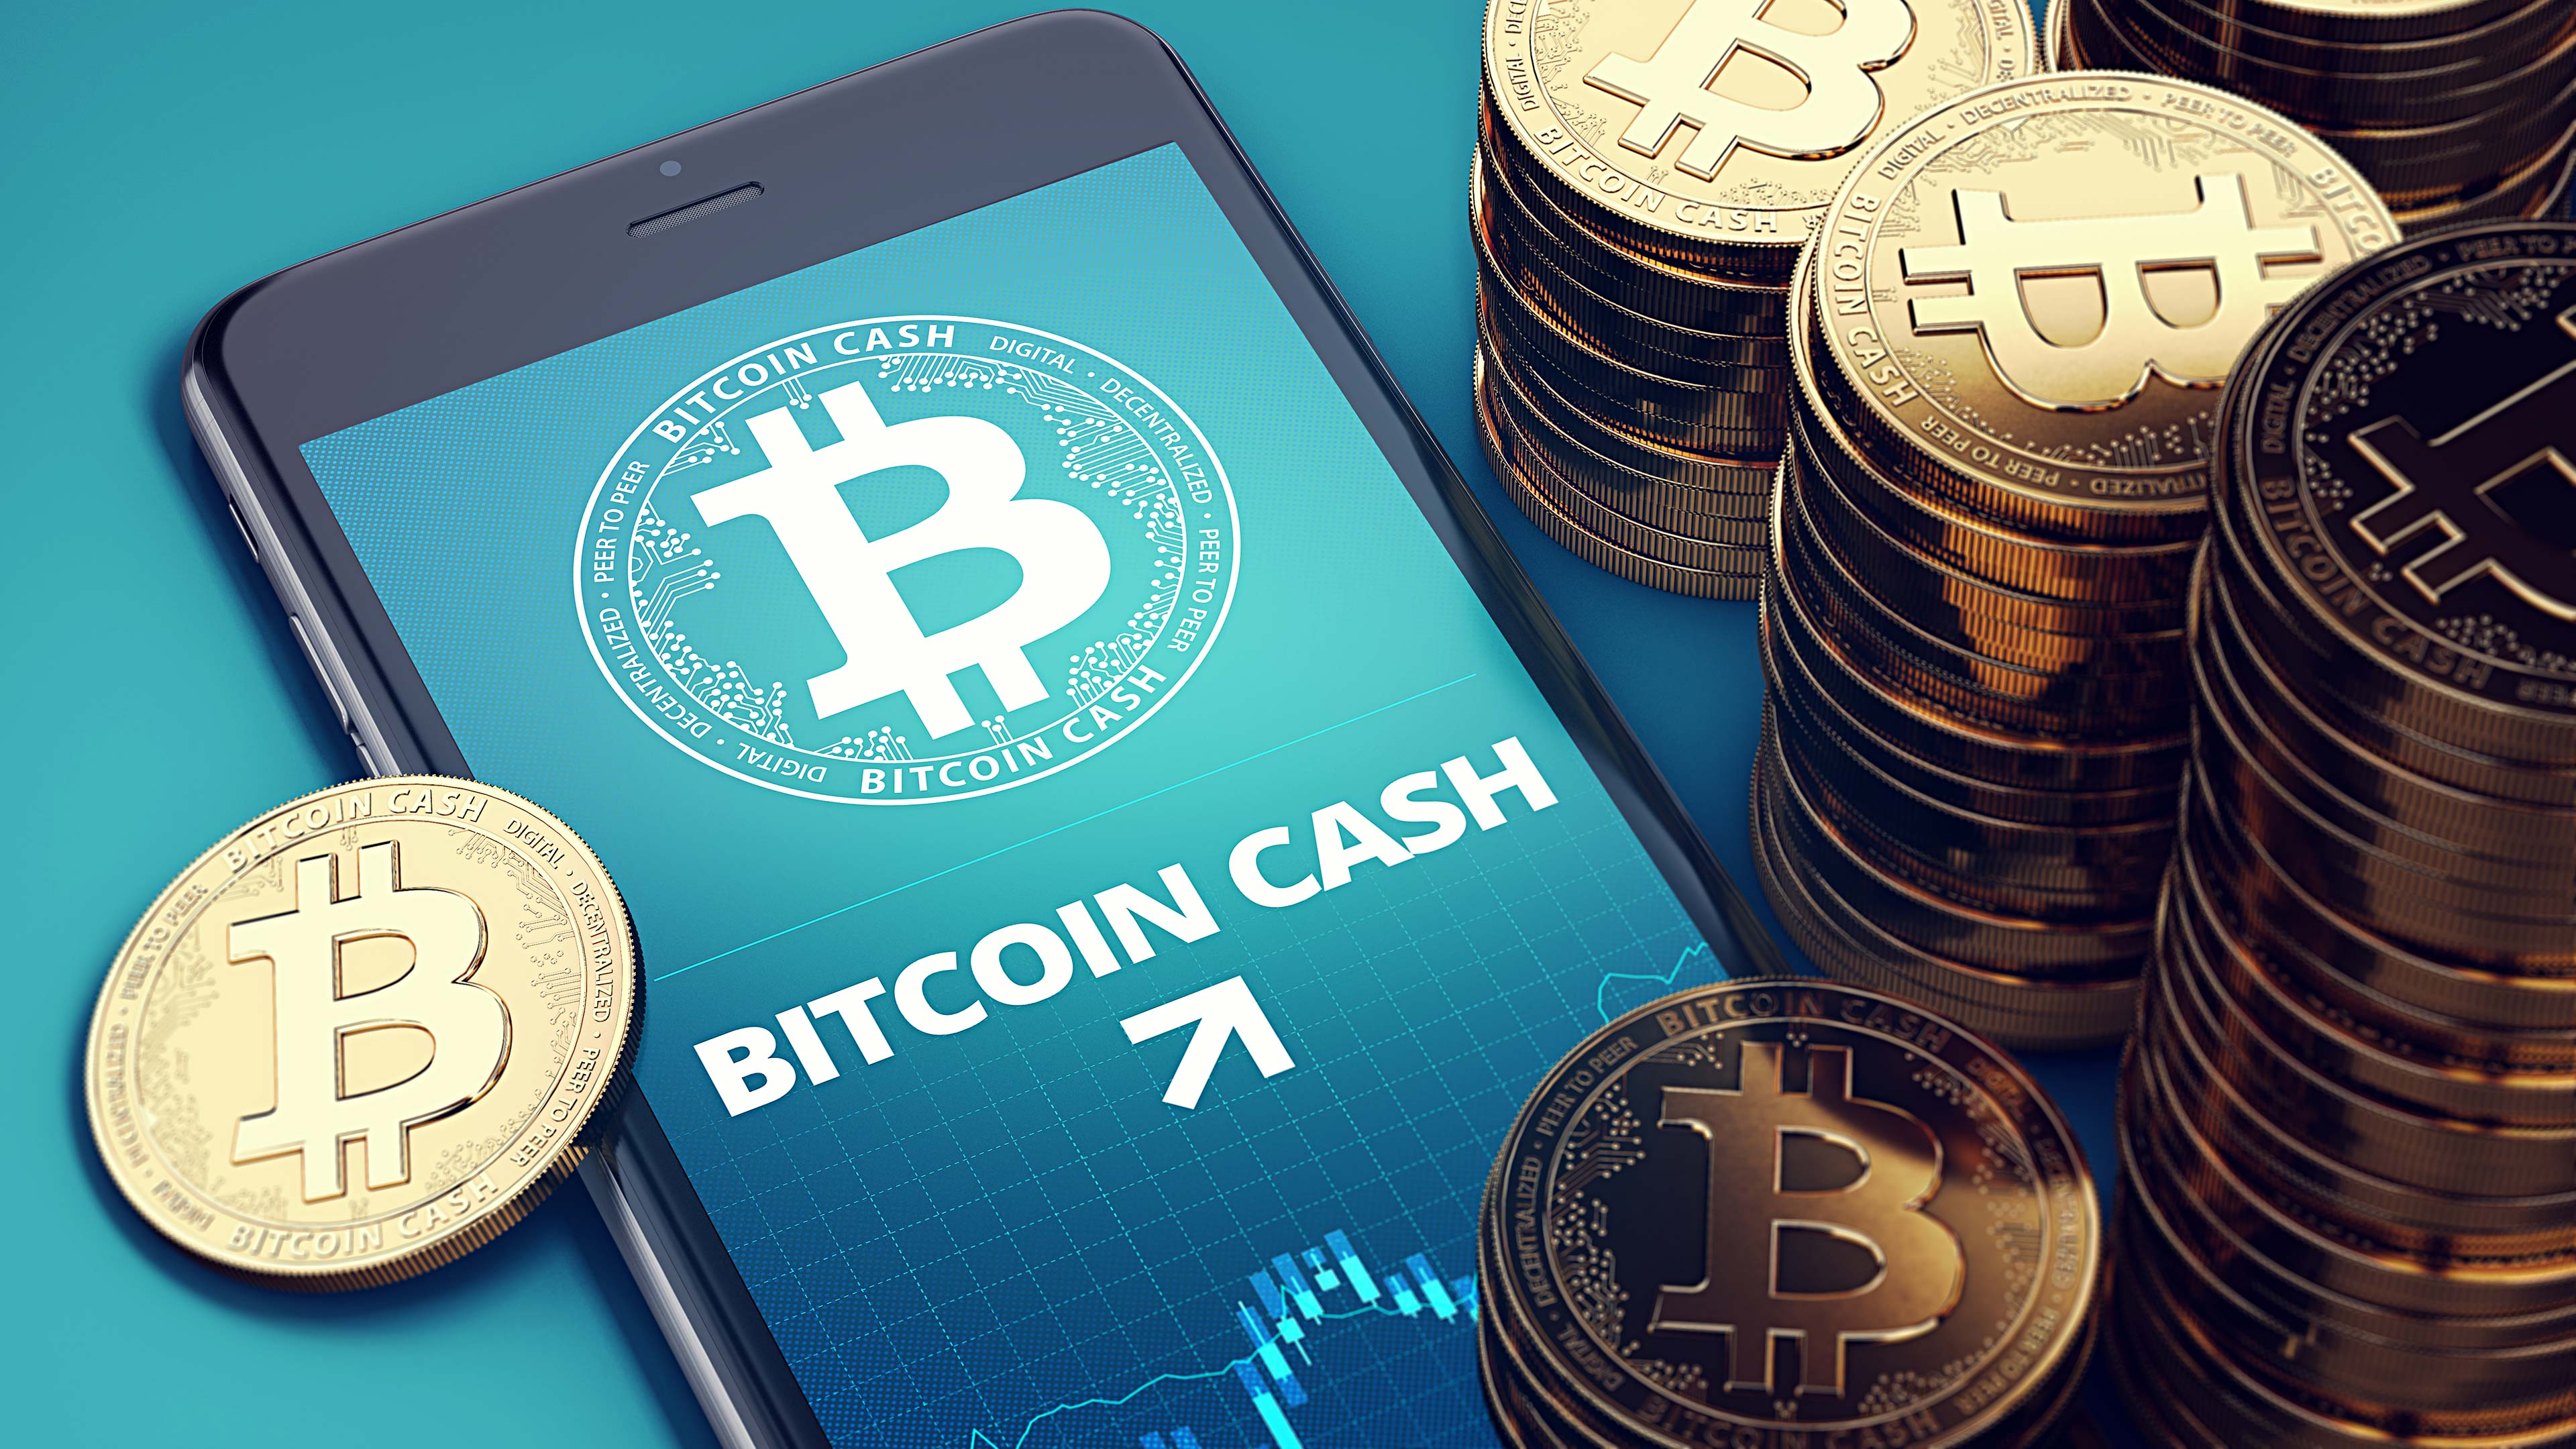 Top cryptocurrency — Bitcoin Cash